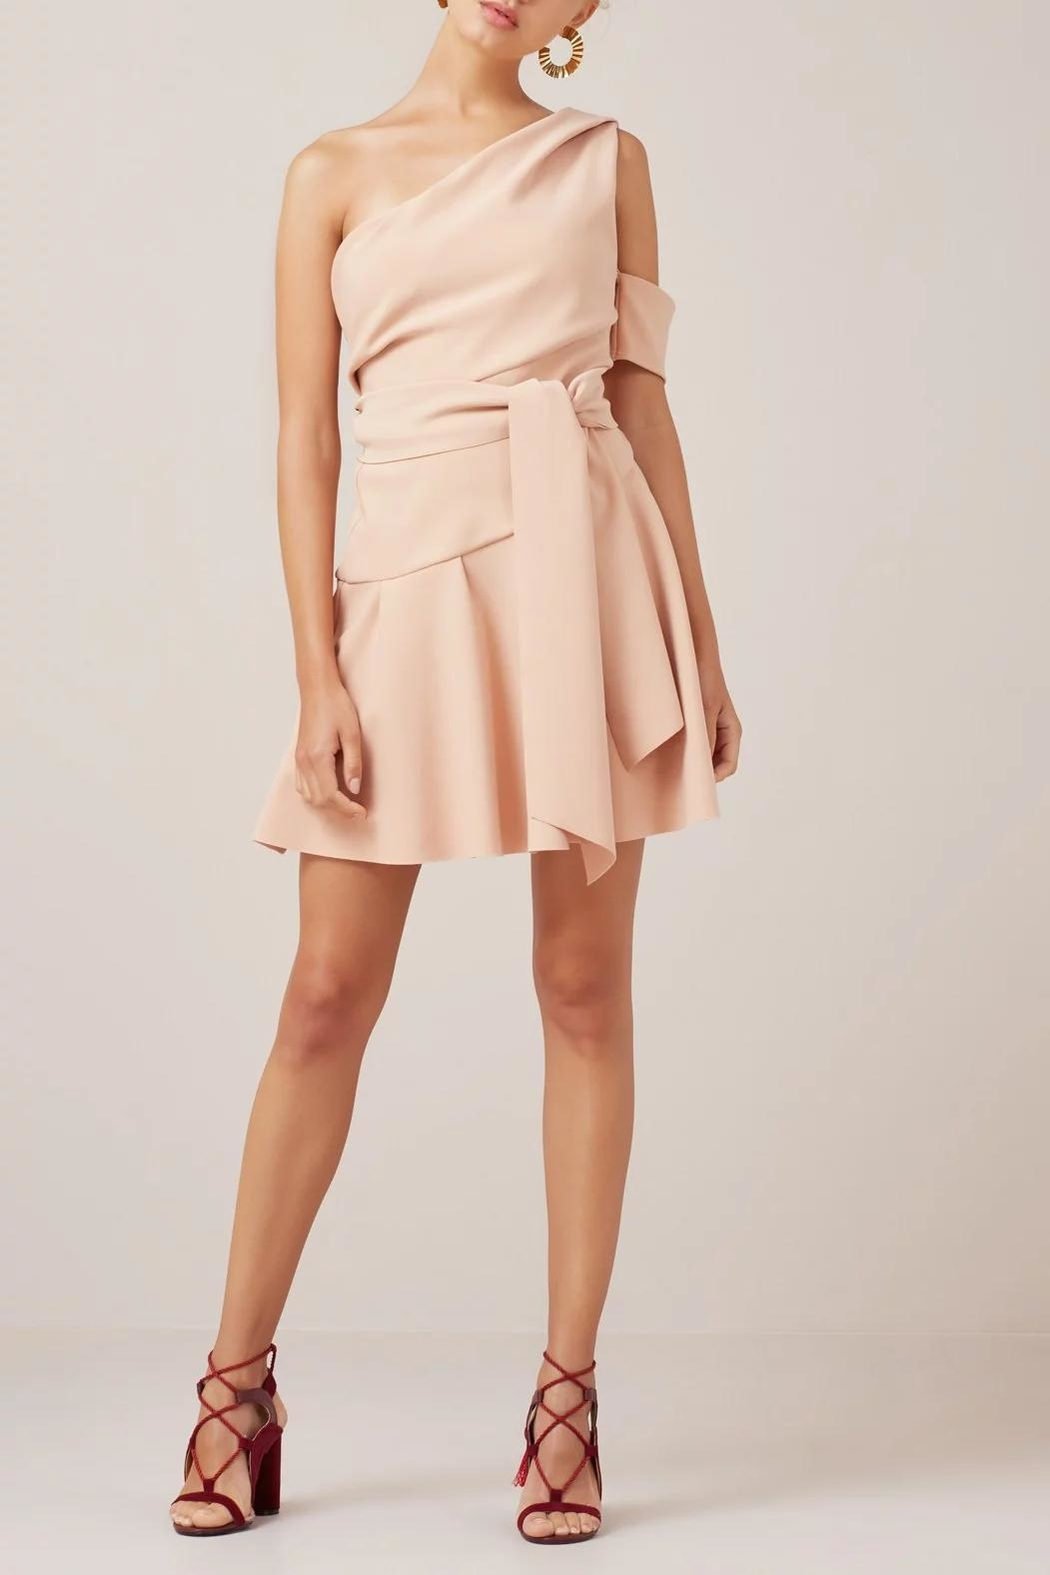 Finders Keepers Oblivion Mini Dress - Side Cropped Image